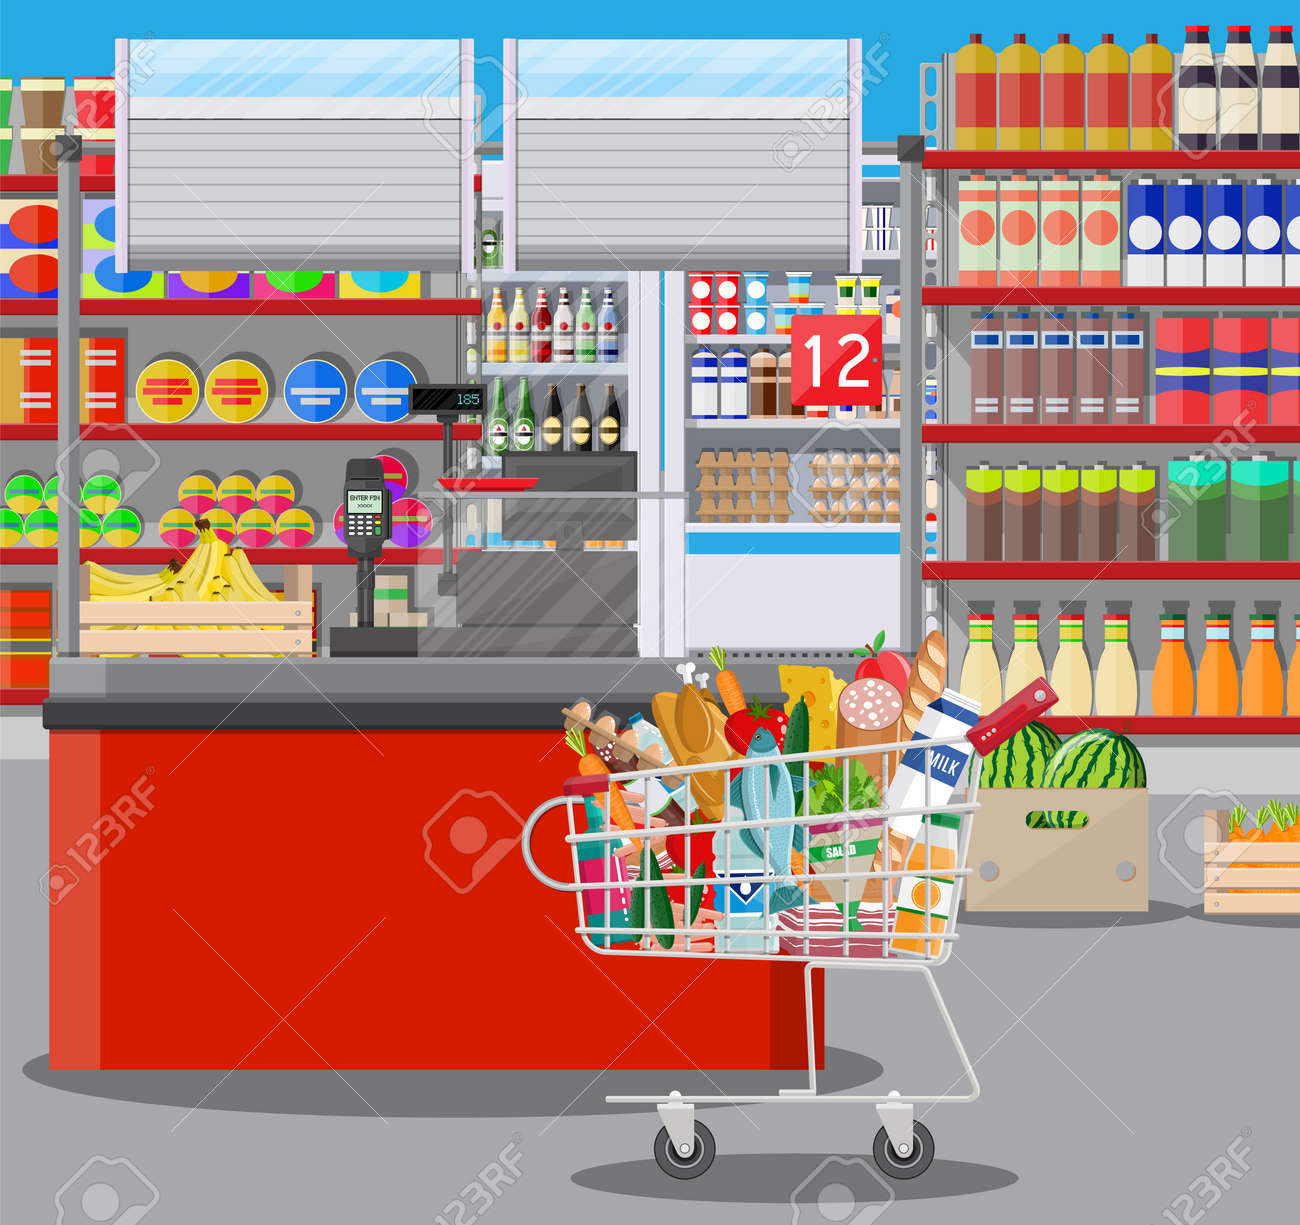 Supermarket store interior with goods. Big shopping mall. Interior store inside. Checkout counter, grocery, drinks, food, fruits, dairy products. Vector illustration in flat style - 83887533